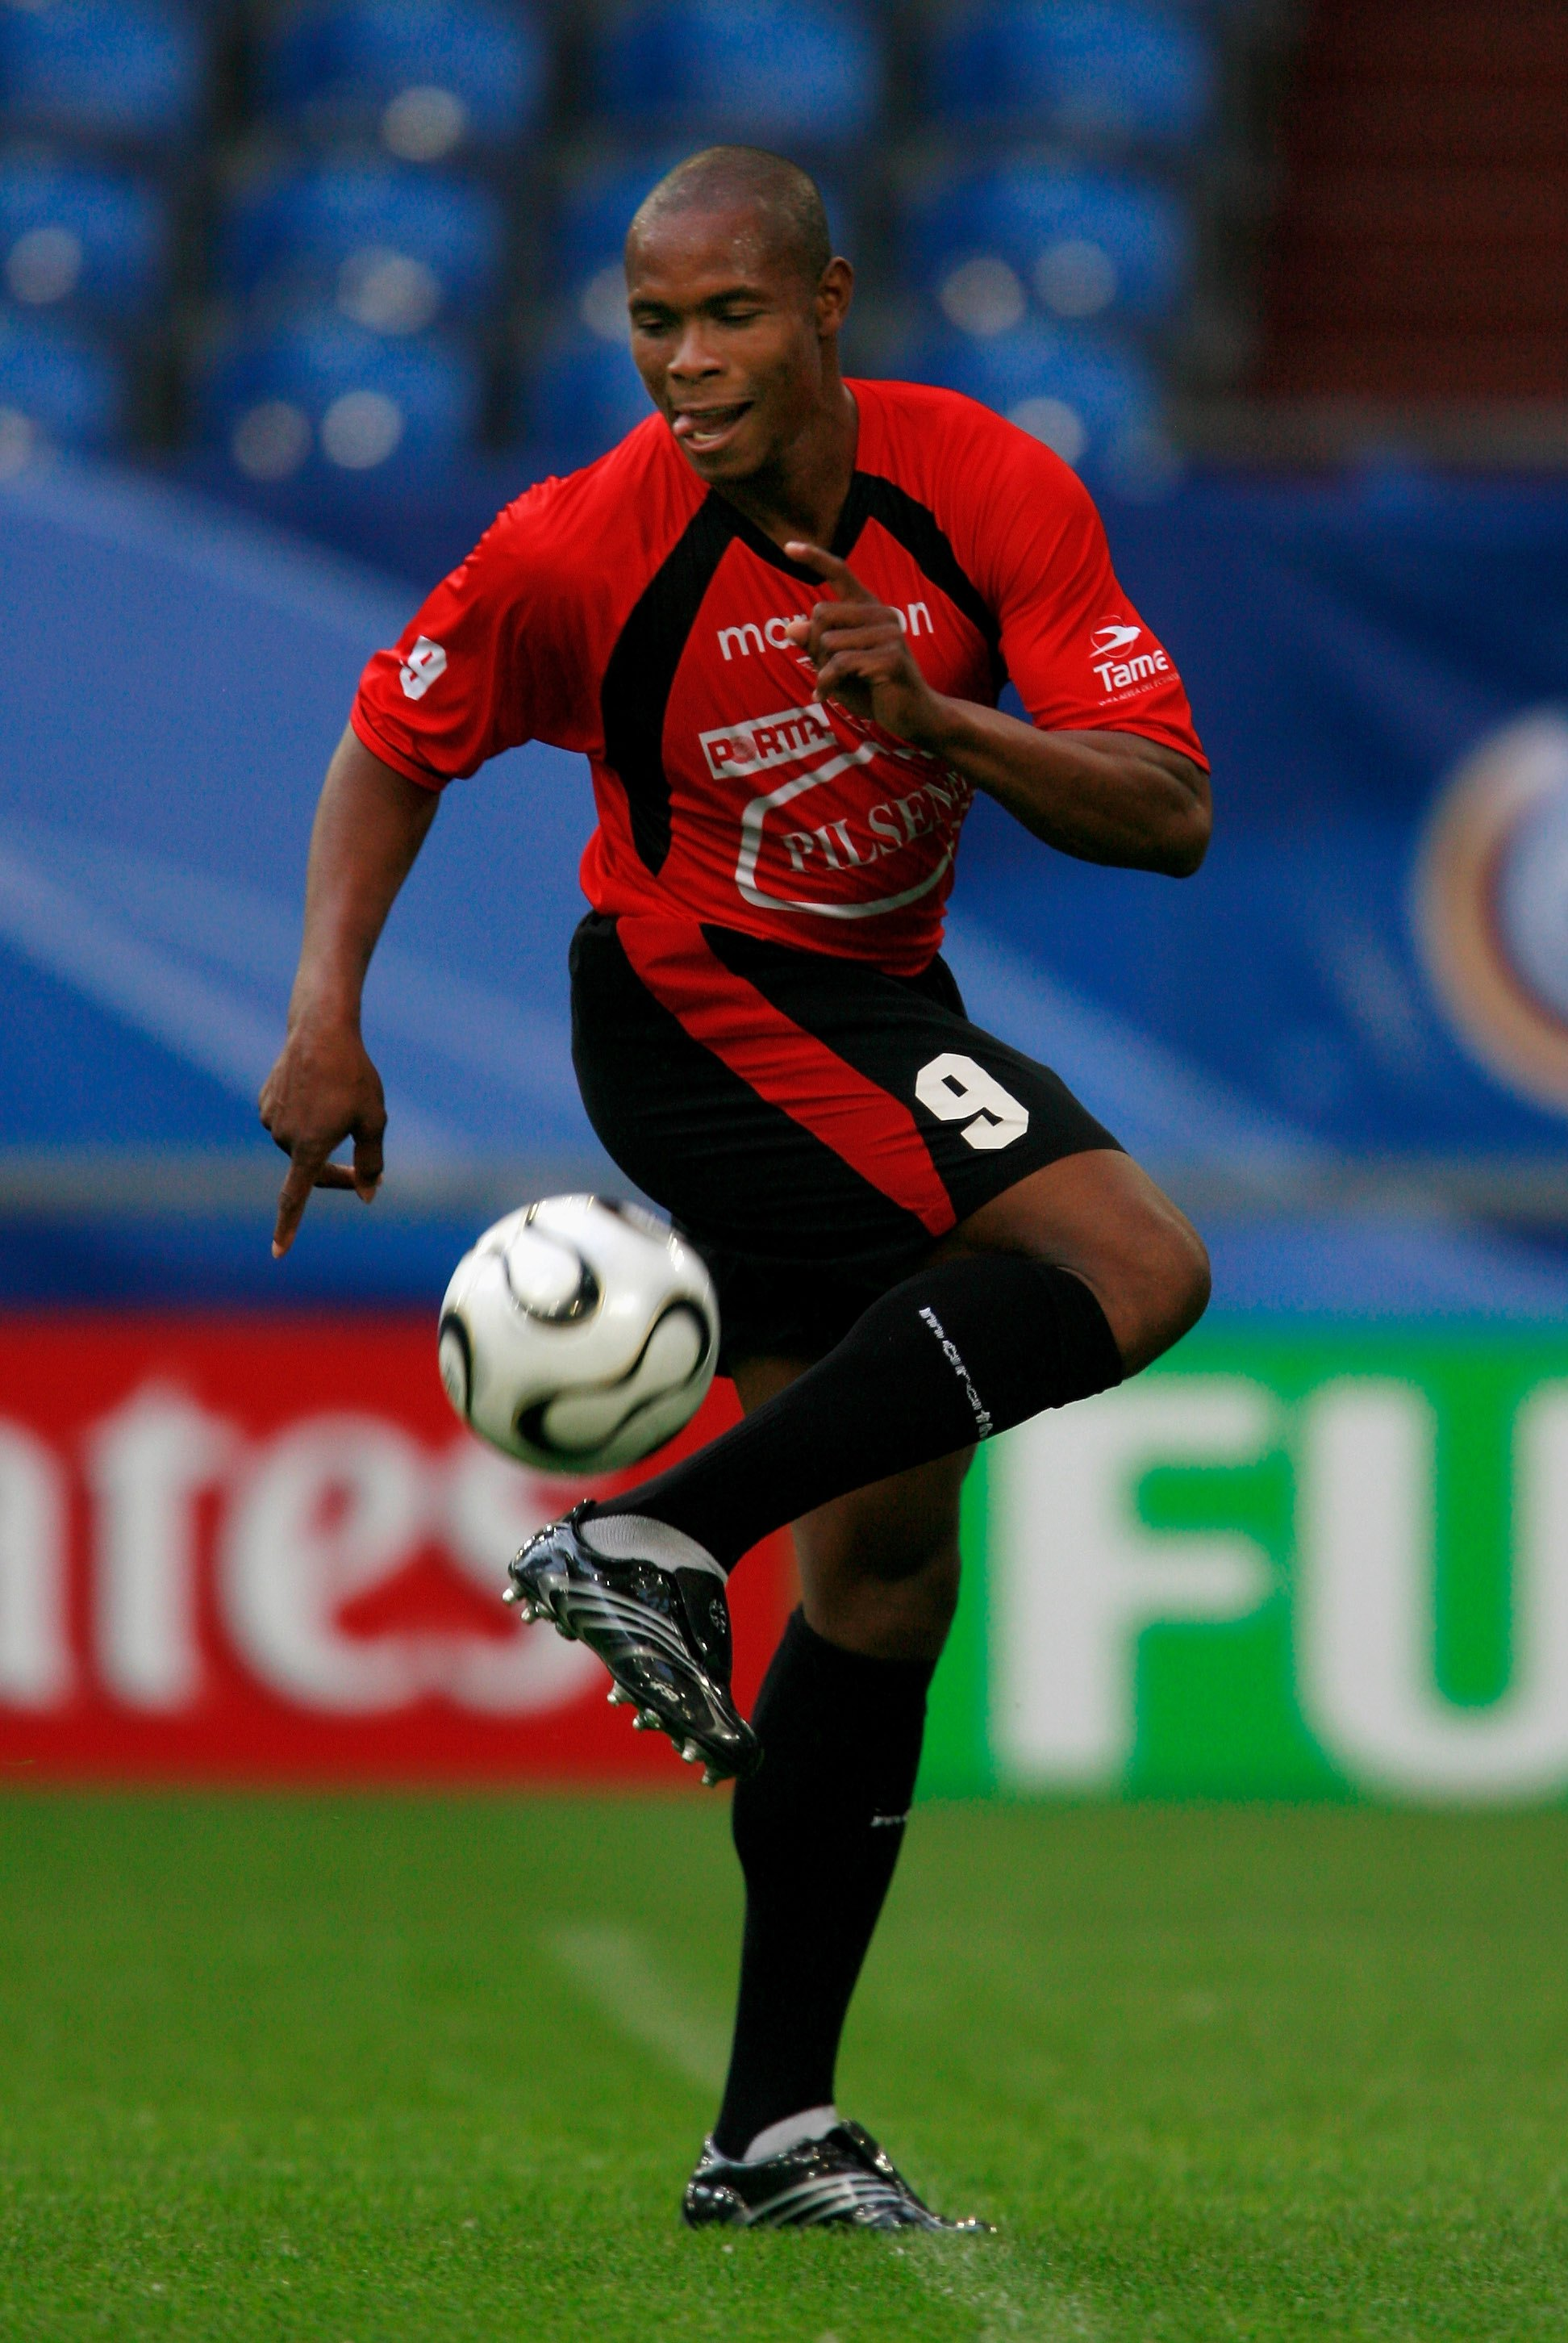 GELSENKIRCHEN, GERMANY - JUNE 08:  Felix Borja of Ecuador in action during a training session for the Ecuador National Team at on June 8, 2006 at Stadium Gelsenkirchen in Gelsenkirchen, Germany.  (Photo by Jamie McDonald/Getty Images)